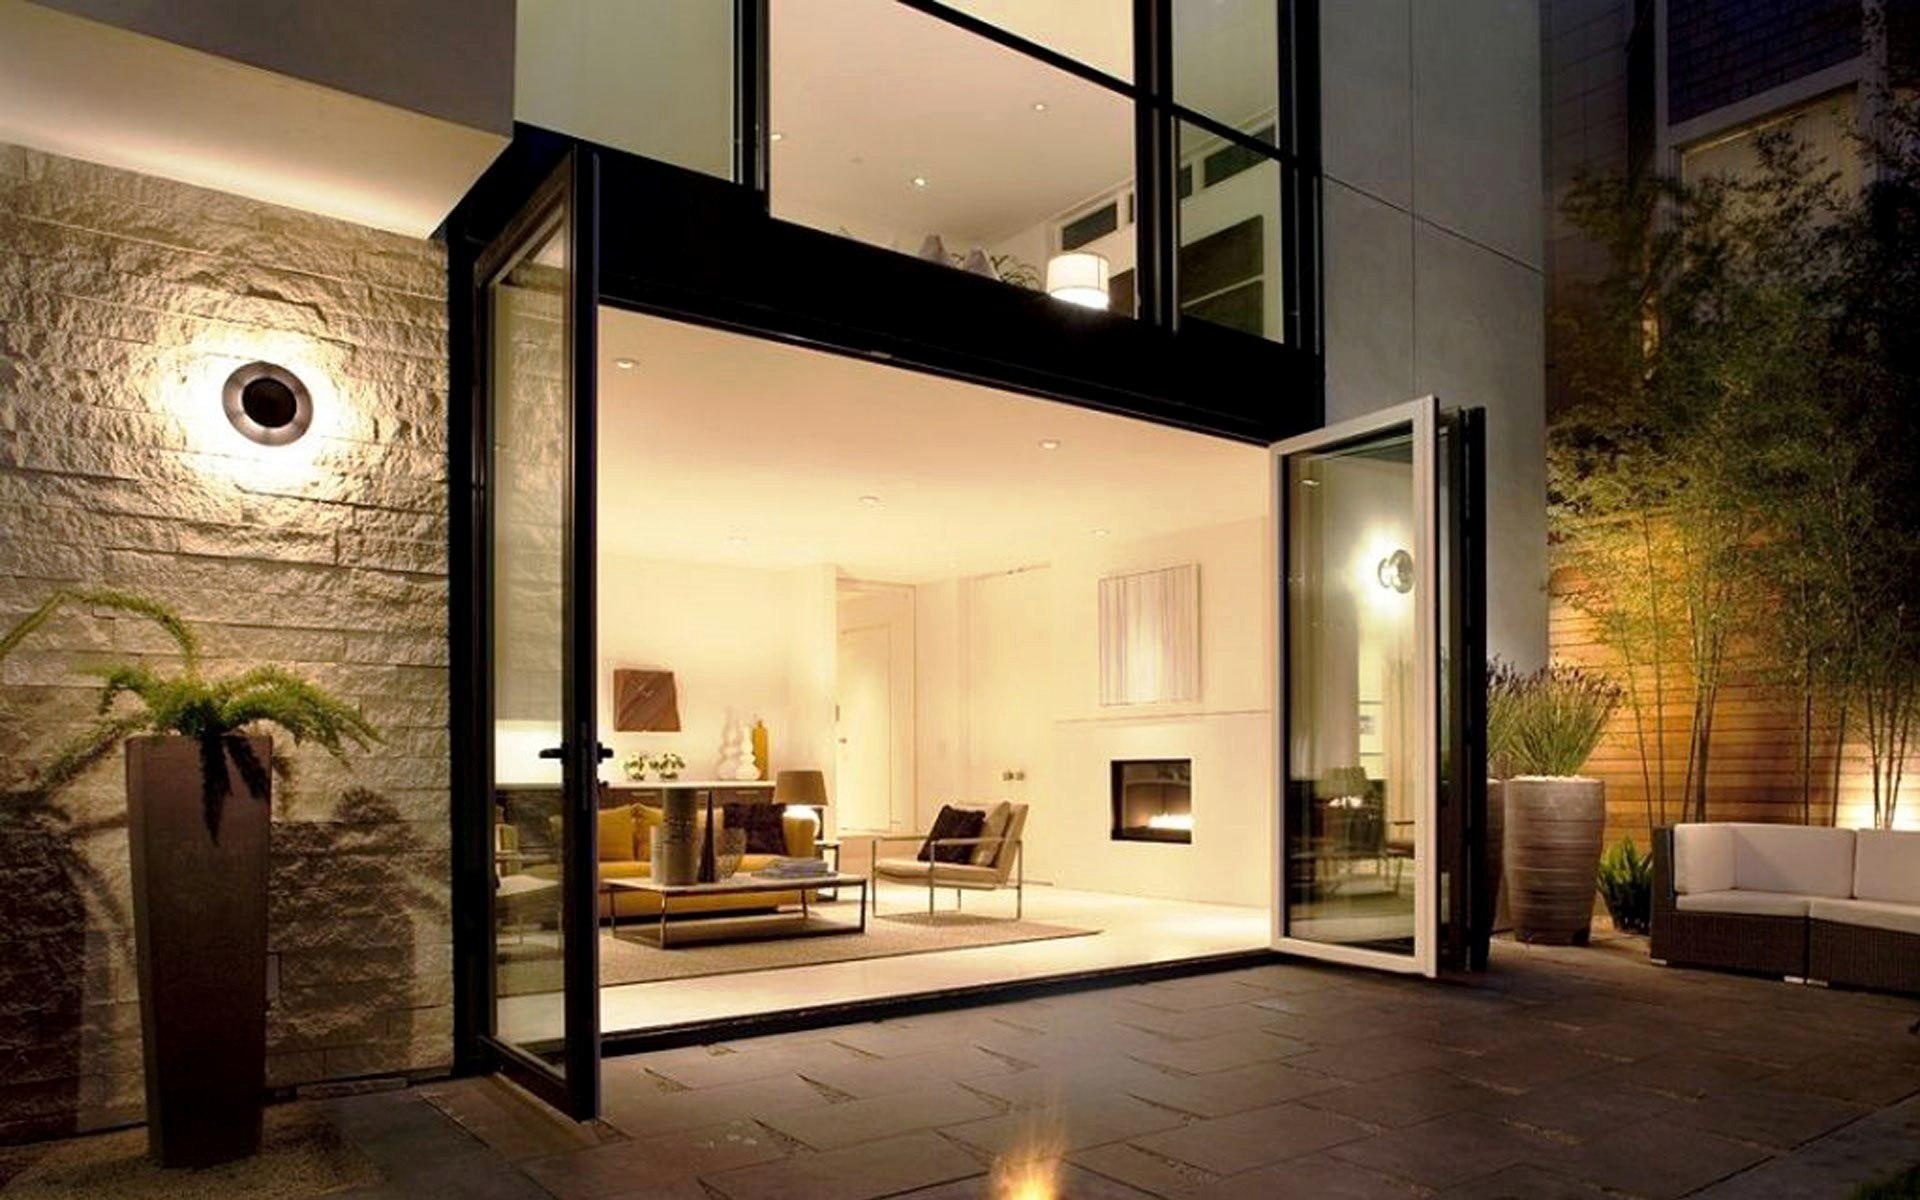 New modern house architecture, Beautiful House outdoor at night